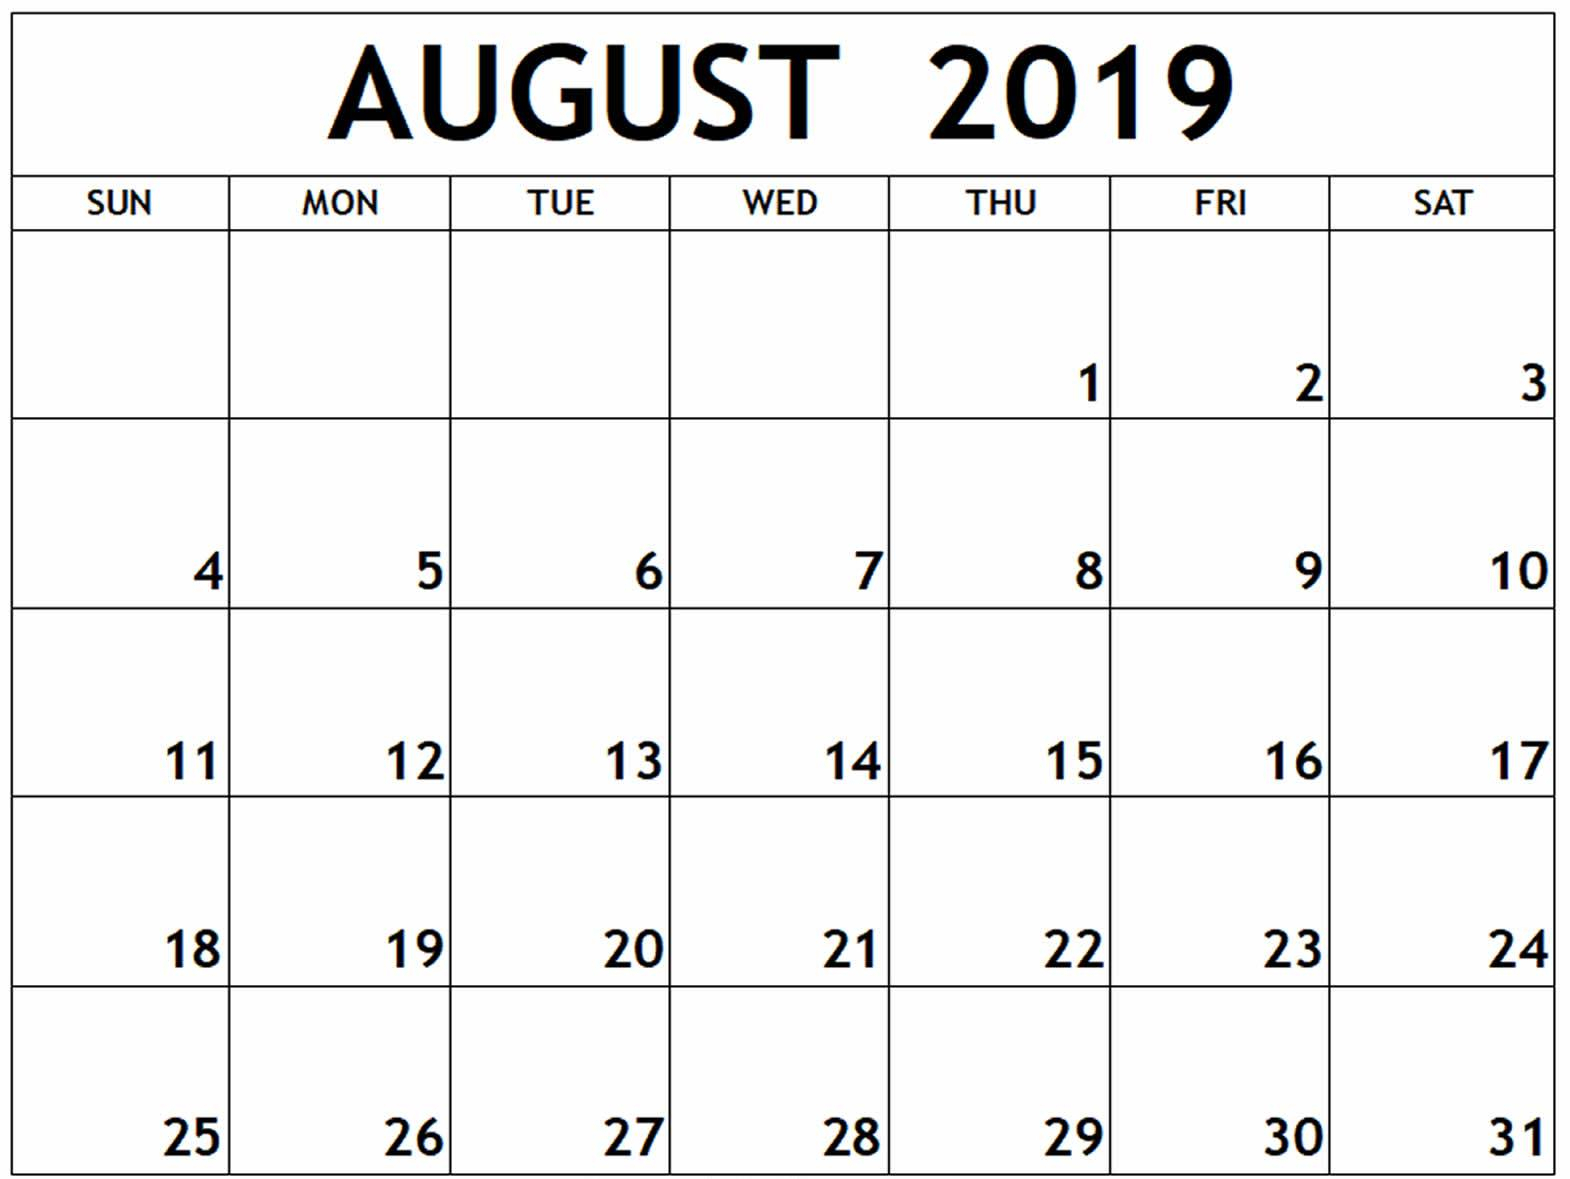 August 2019 Calendar Excel With Blank Printable Template in August Calendar Template Excel